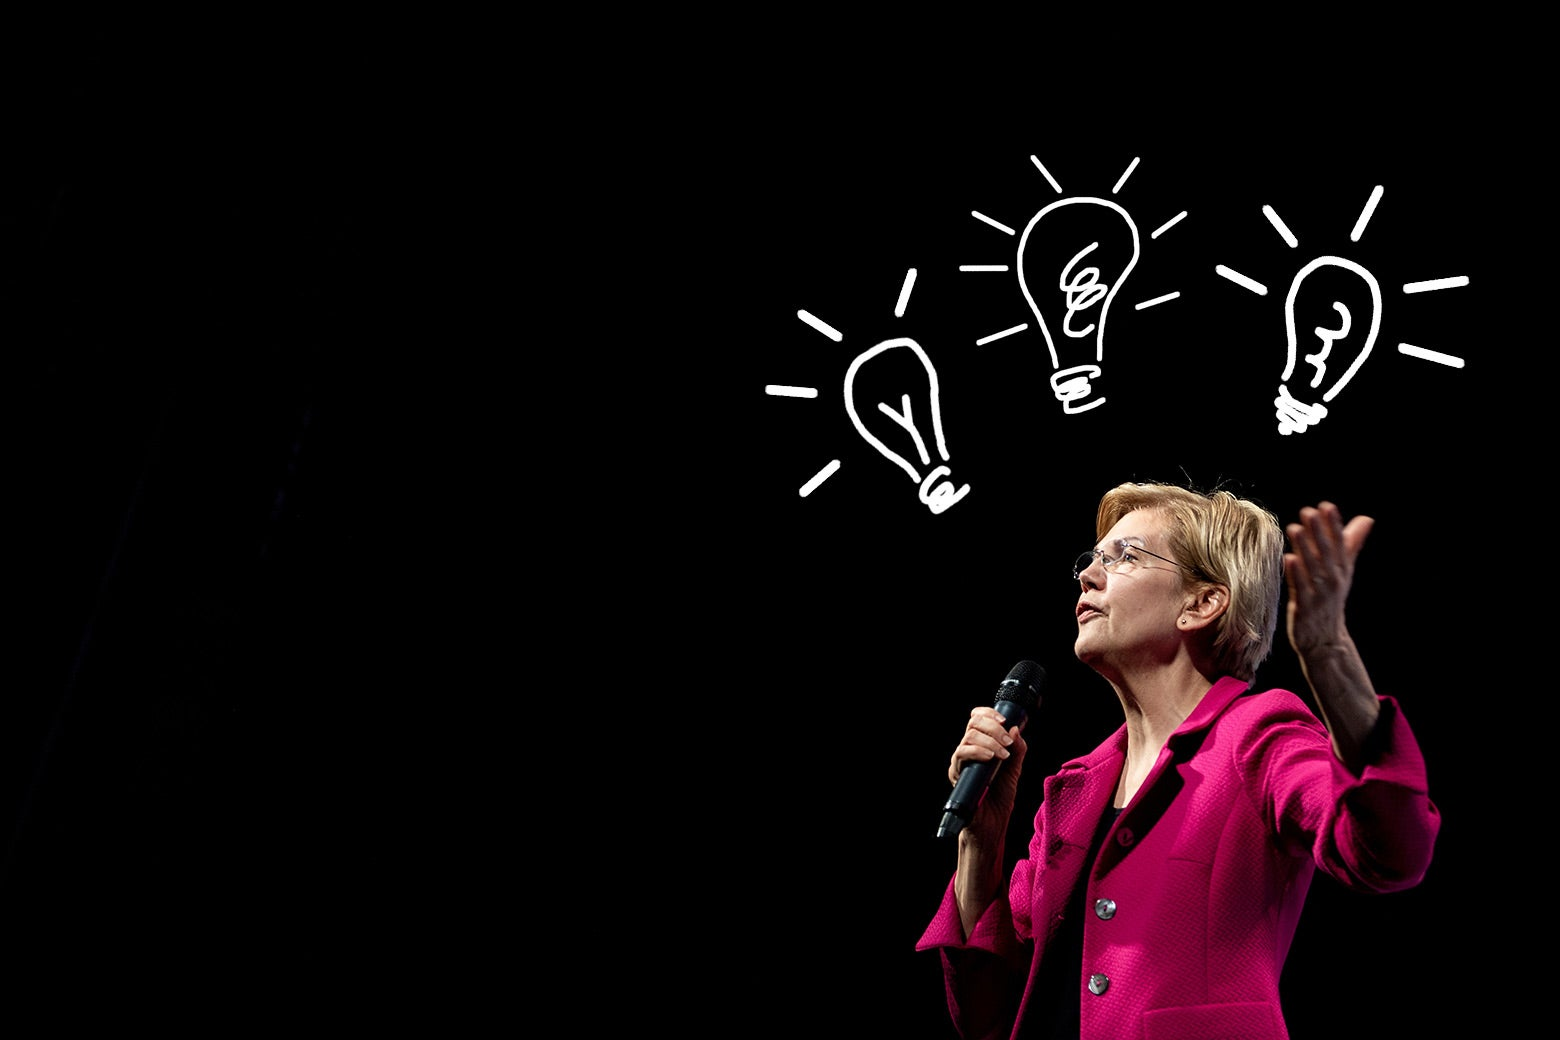 Elizabeth Warren speaks some policy, with drawn lightbulbs going off over her head.